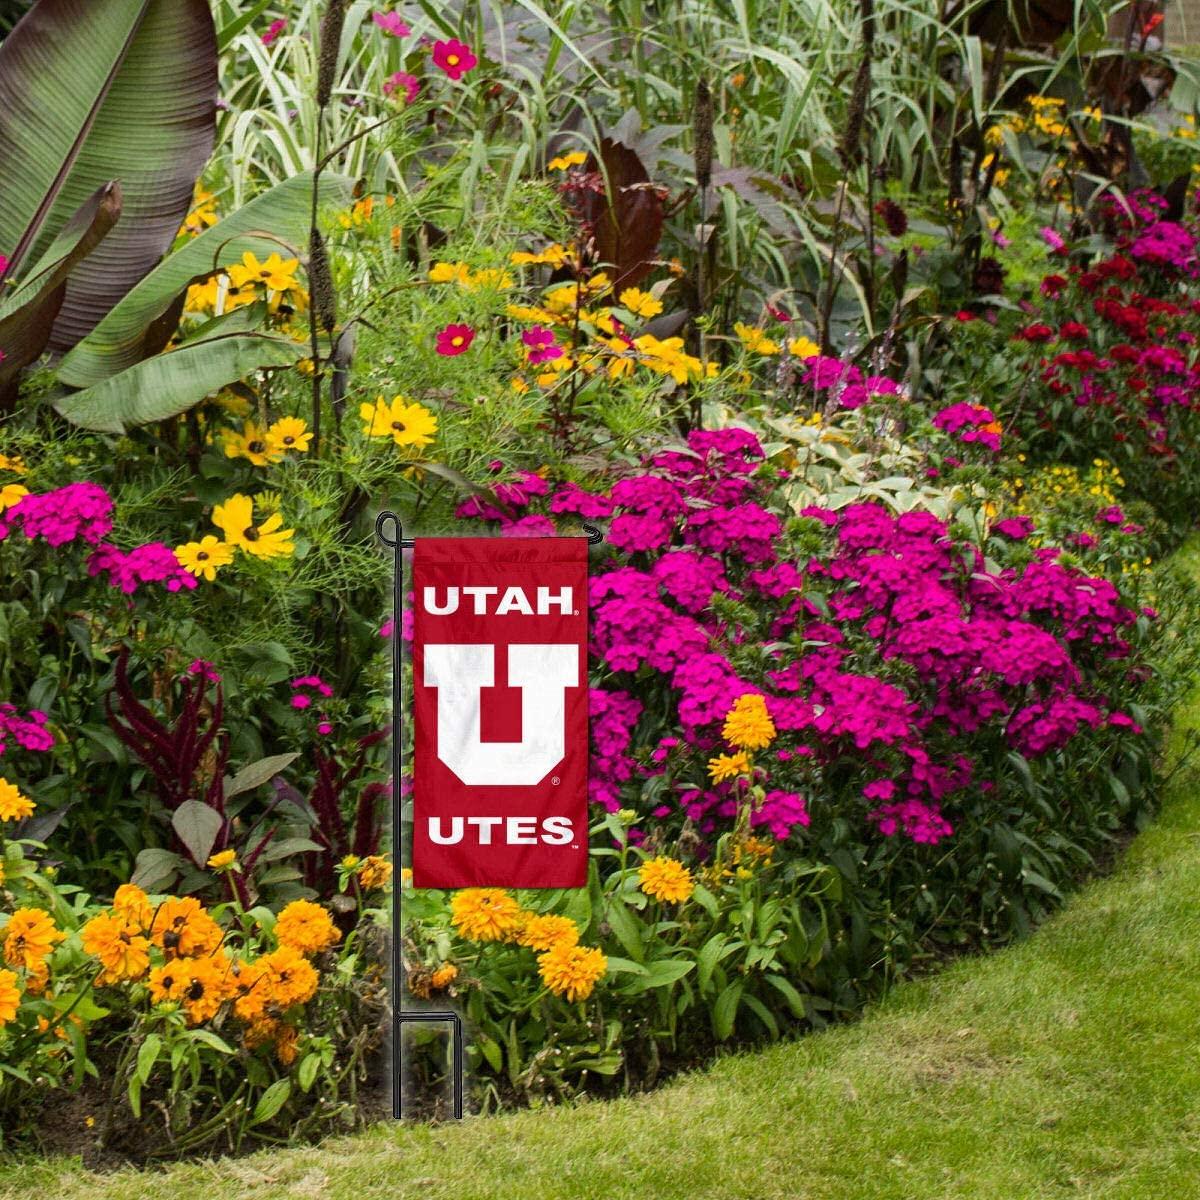 College Flags /& Banners Co Utah Utes Mini Garden and Flower Pot Flag Topper